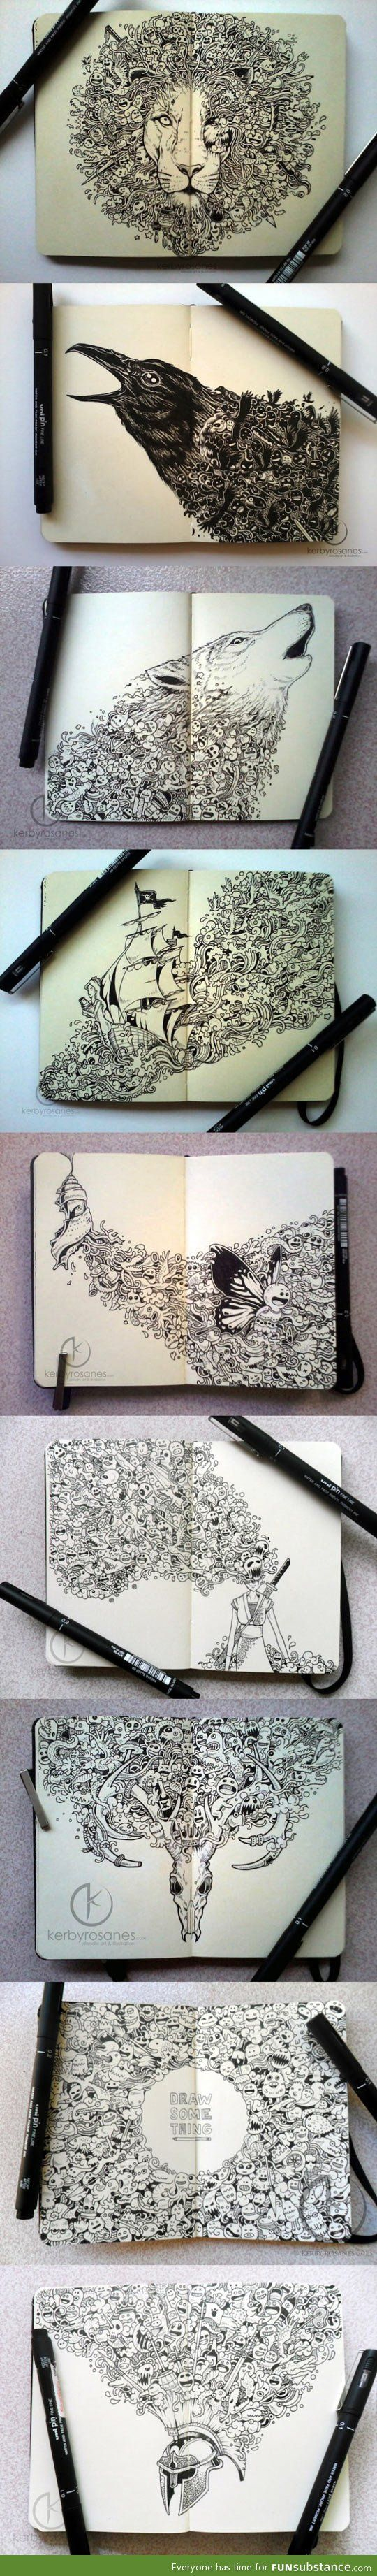 Incredible moleskine drawings by Kerby Rosanes.  More treats at the link.